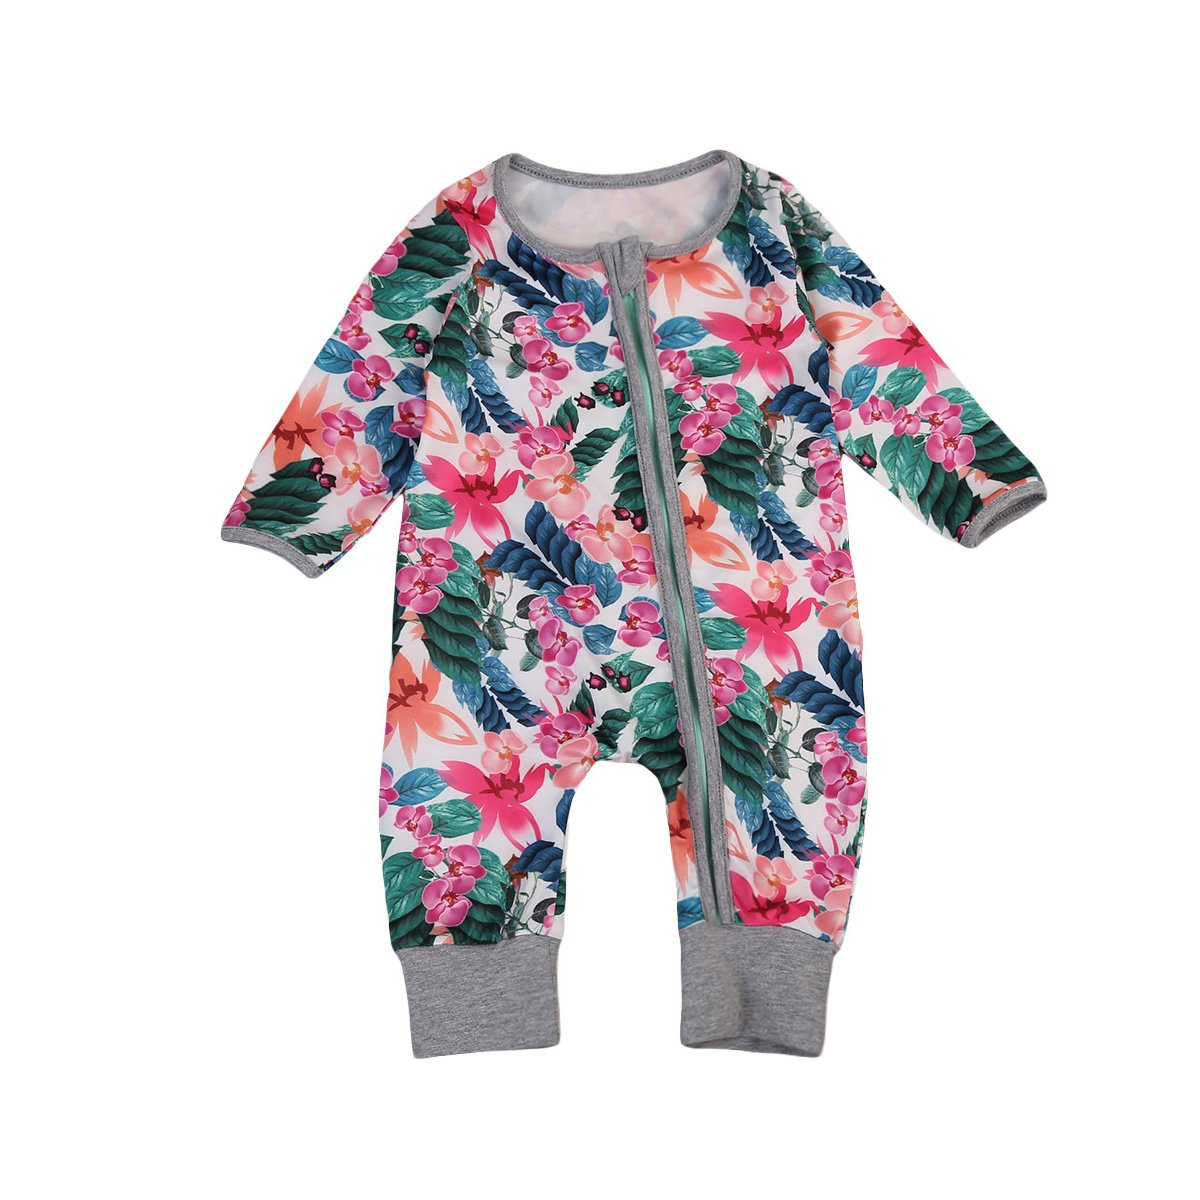 Newborn Baby Girl Floral Sleeper Flower Printed Zipper Romper Jumpsuit Play Wear ITFABS